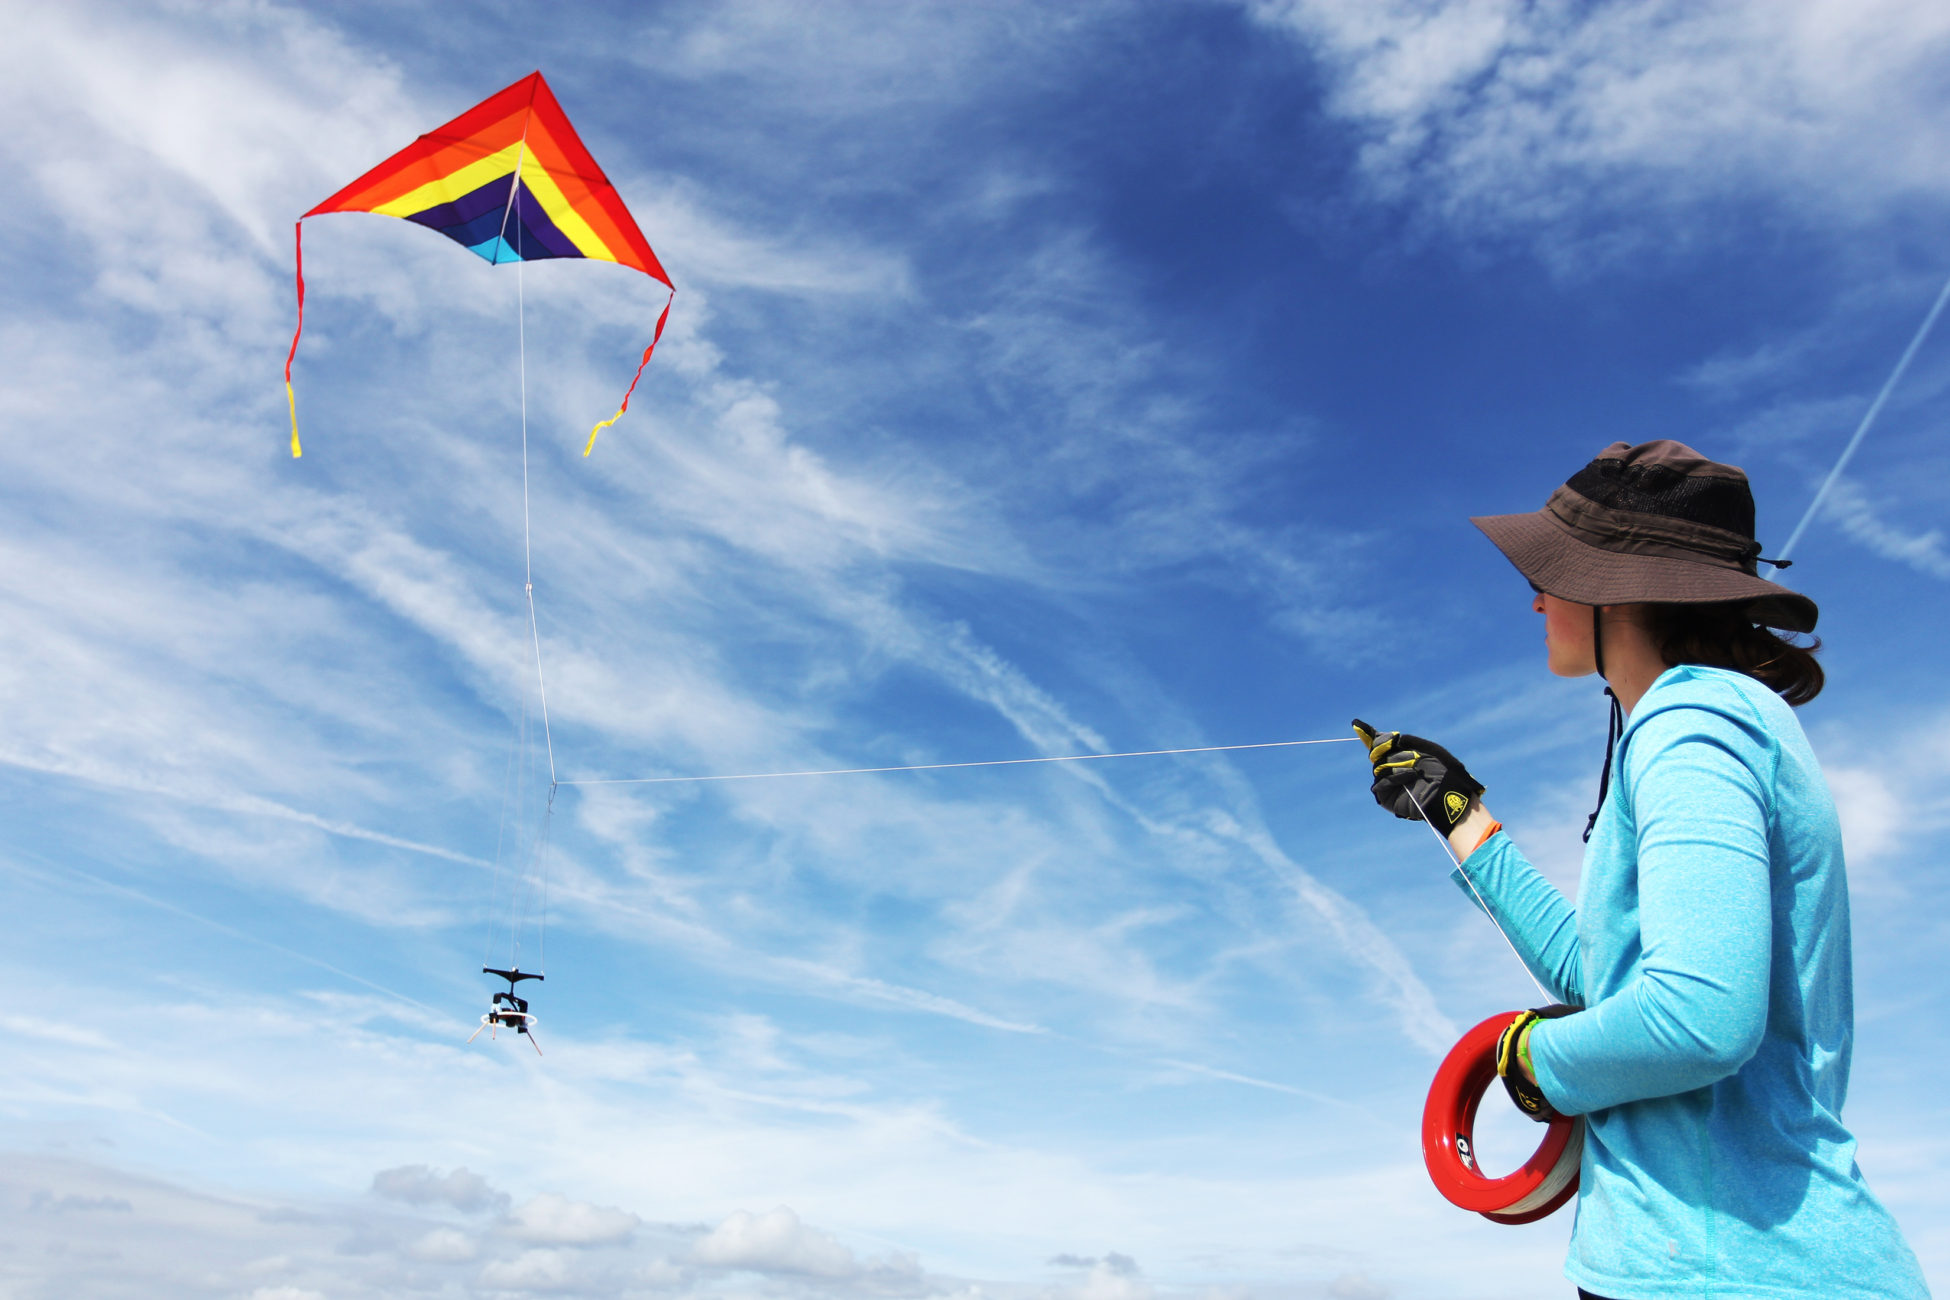 Elsemarie deVries flies a kite out on the beach with a camera attached to conduct an aerial survey